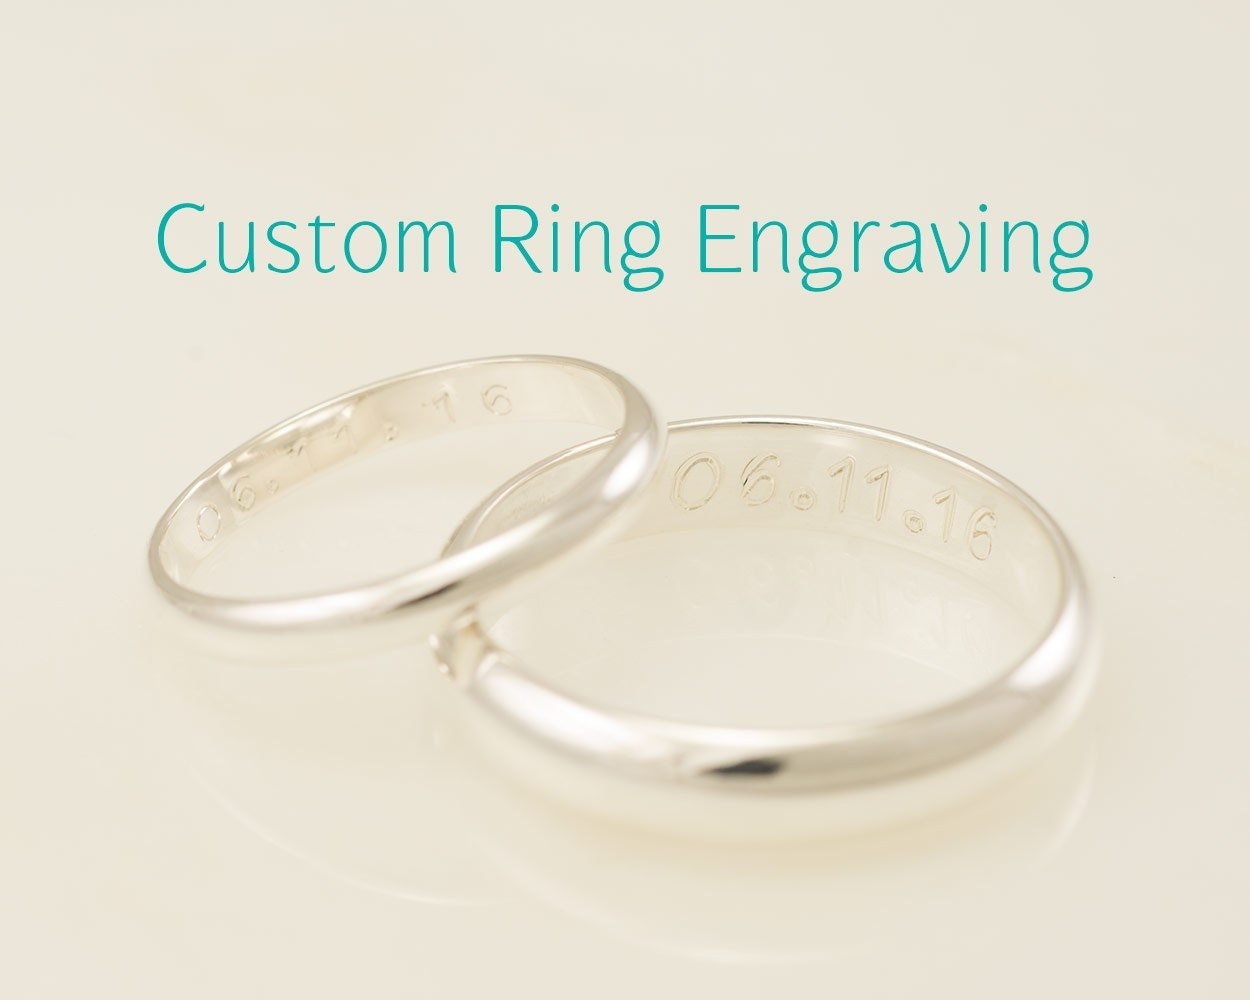 Wedding ring engraving add custom ring engraving engraving for Wedding ring engraving